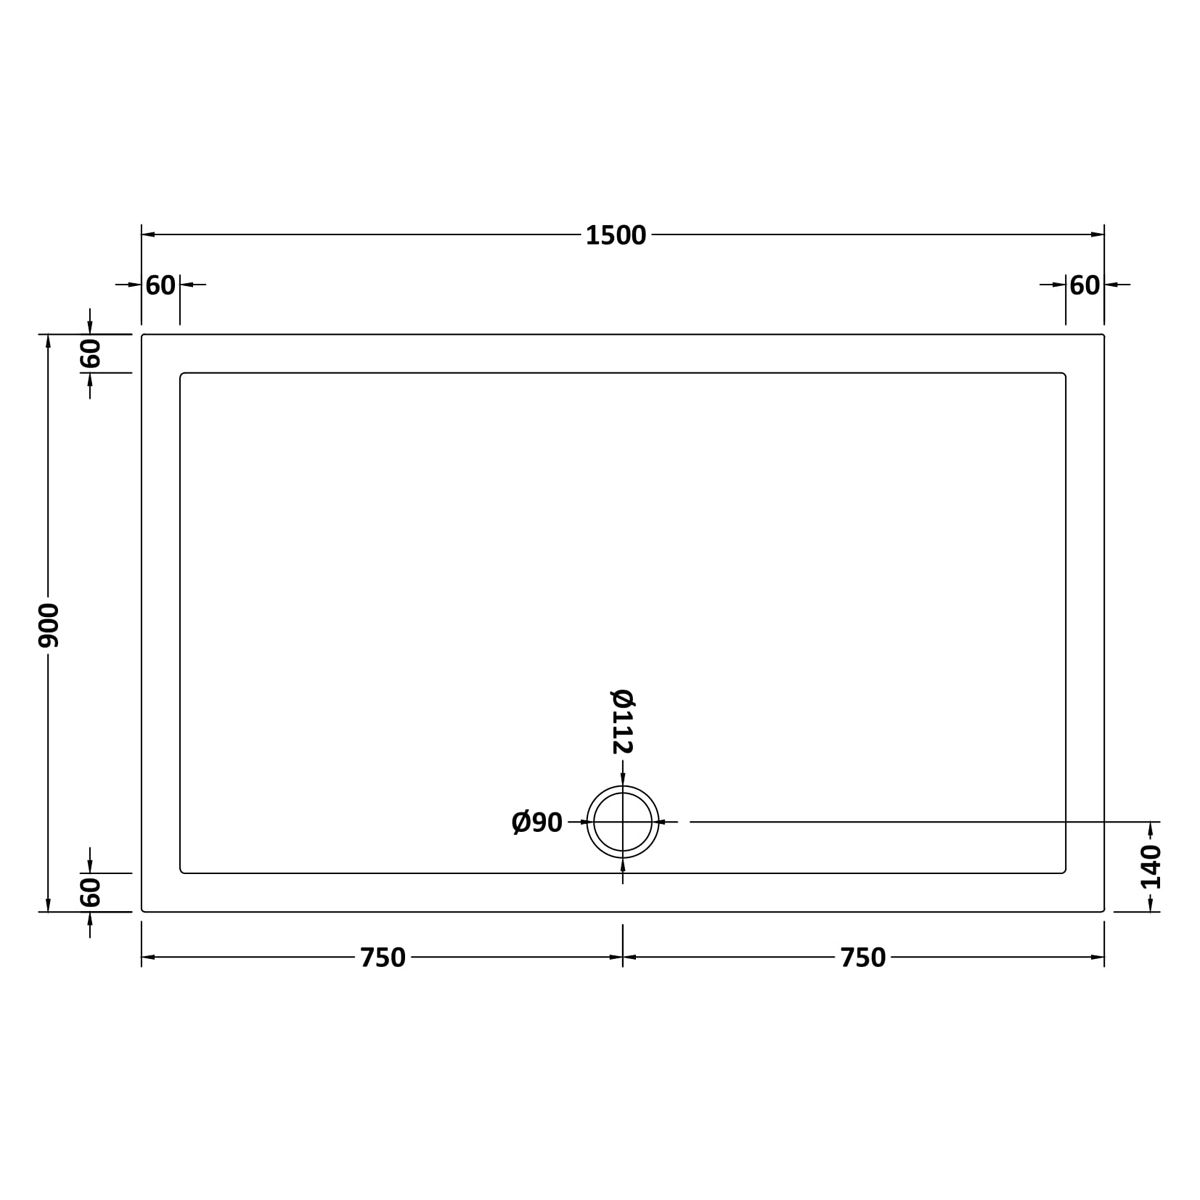 1500 x 900 Shower Tray Slate Grey Rectangular Low Profile by Pearlstone Dimensions